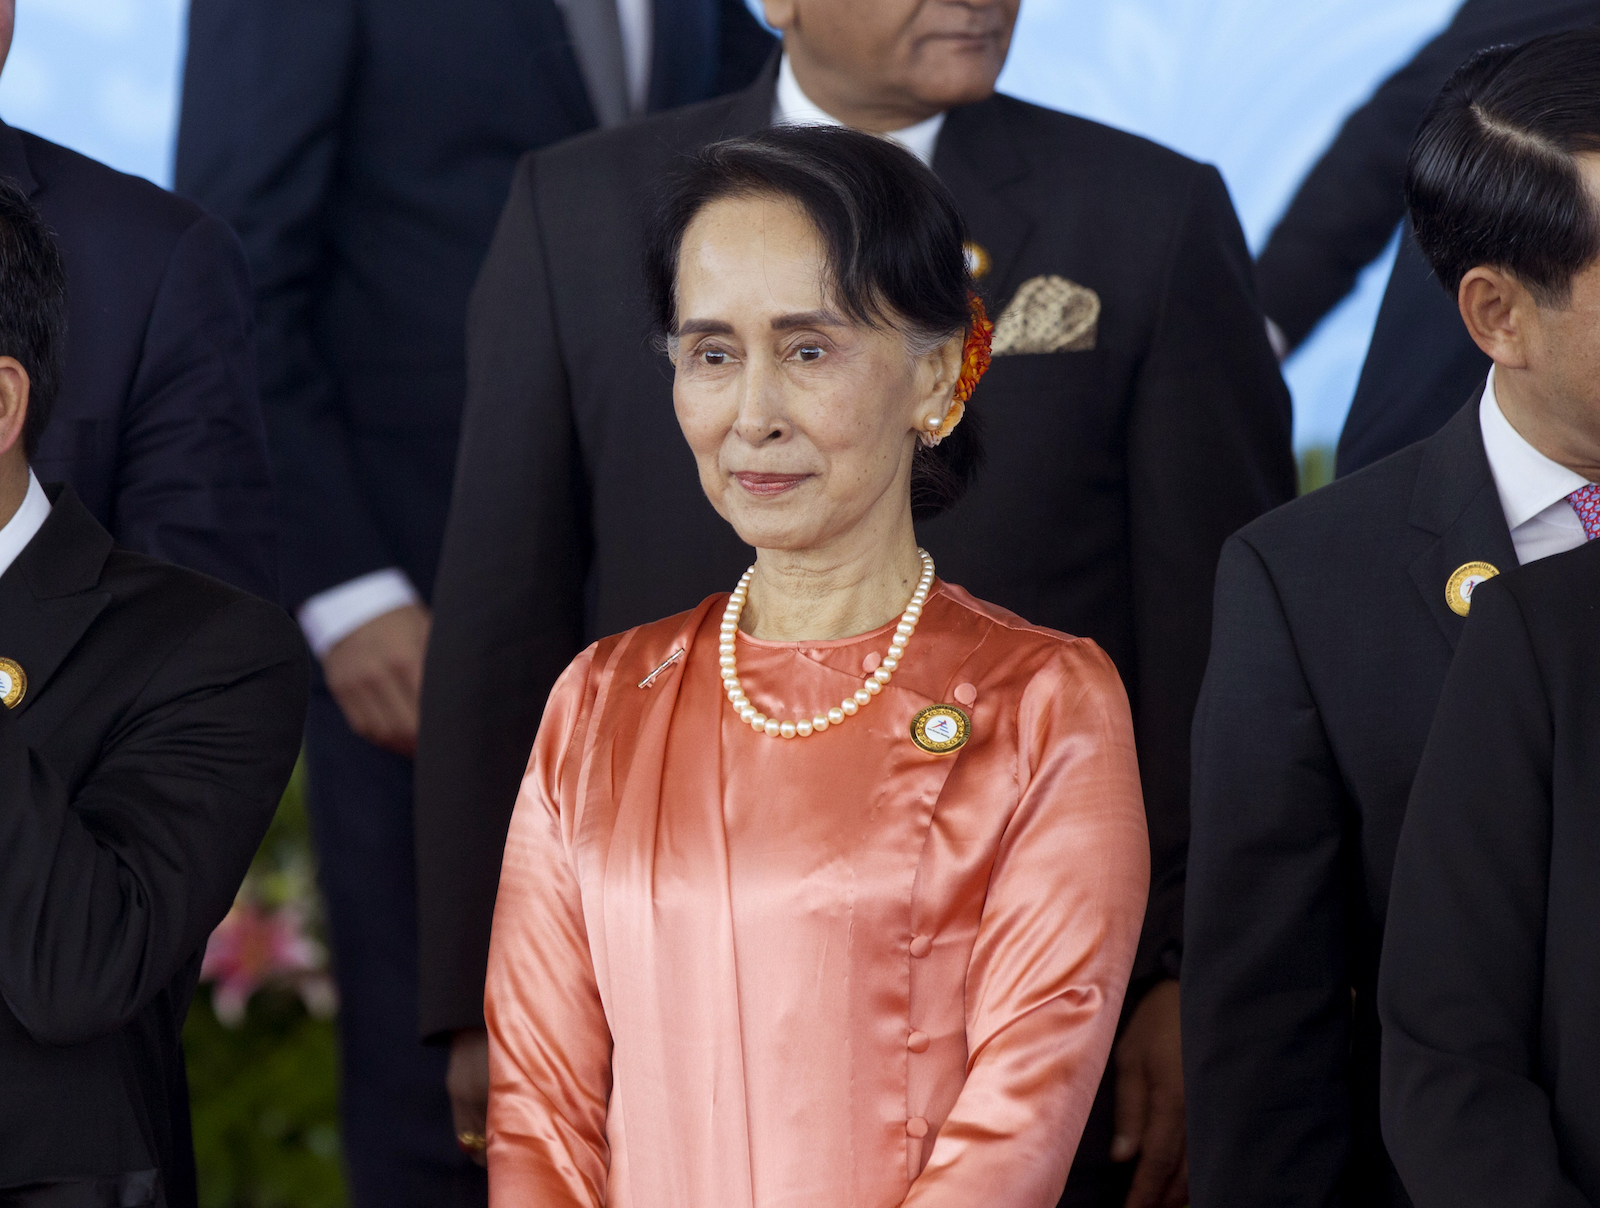 Myanmar leader Aung San Suu Kyi at a meeting of Asian and European foreign ministers in November 2017